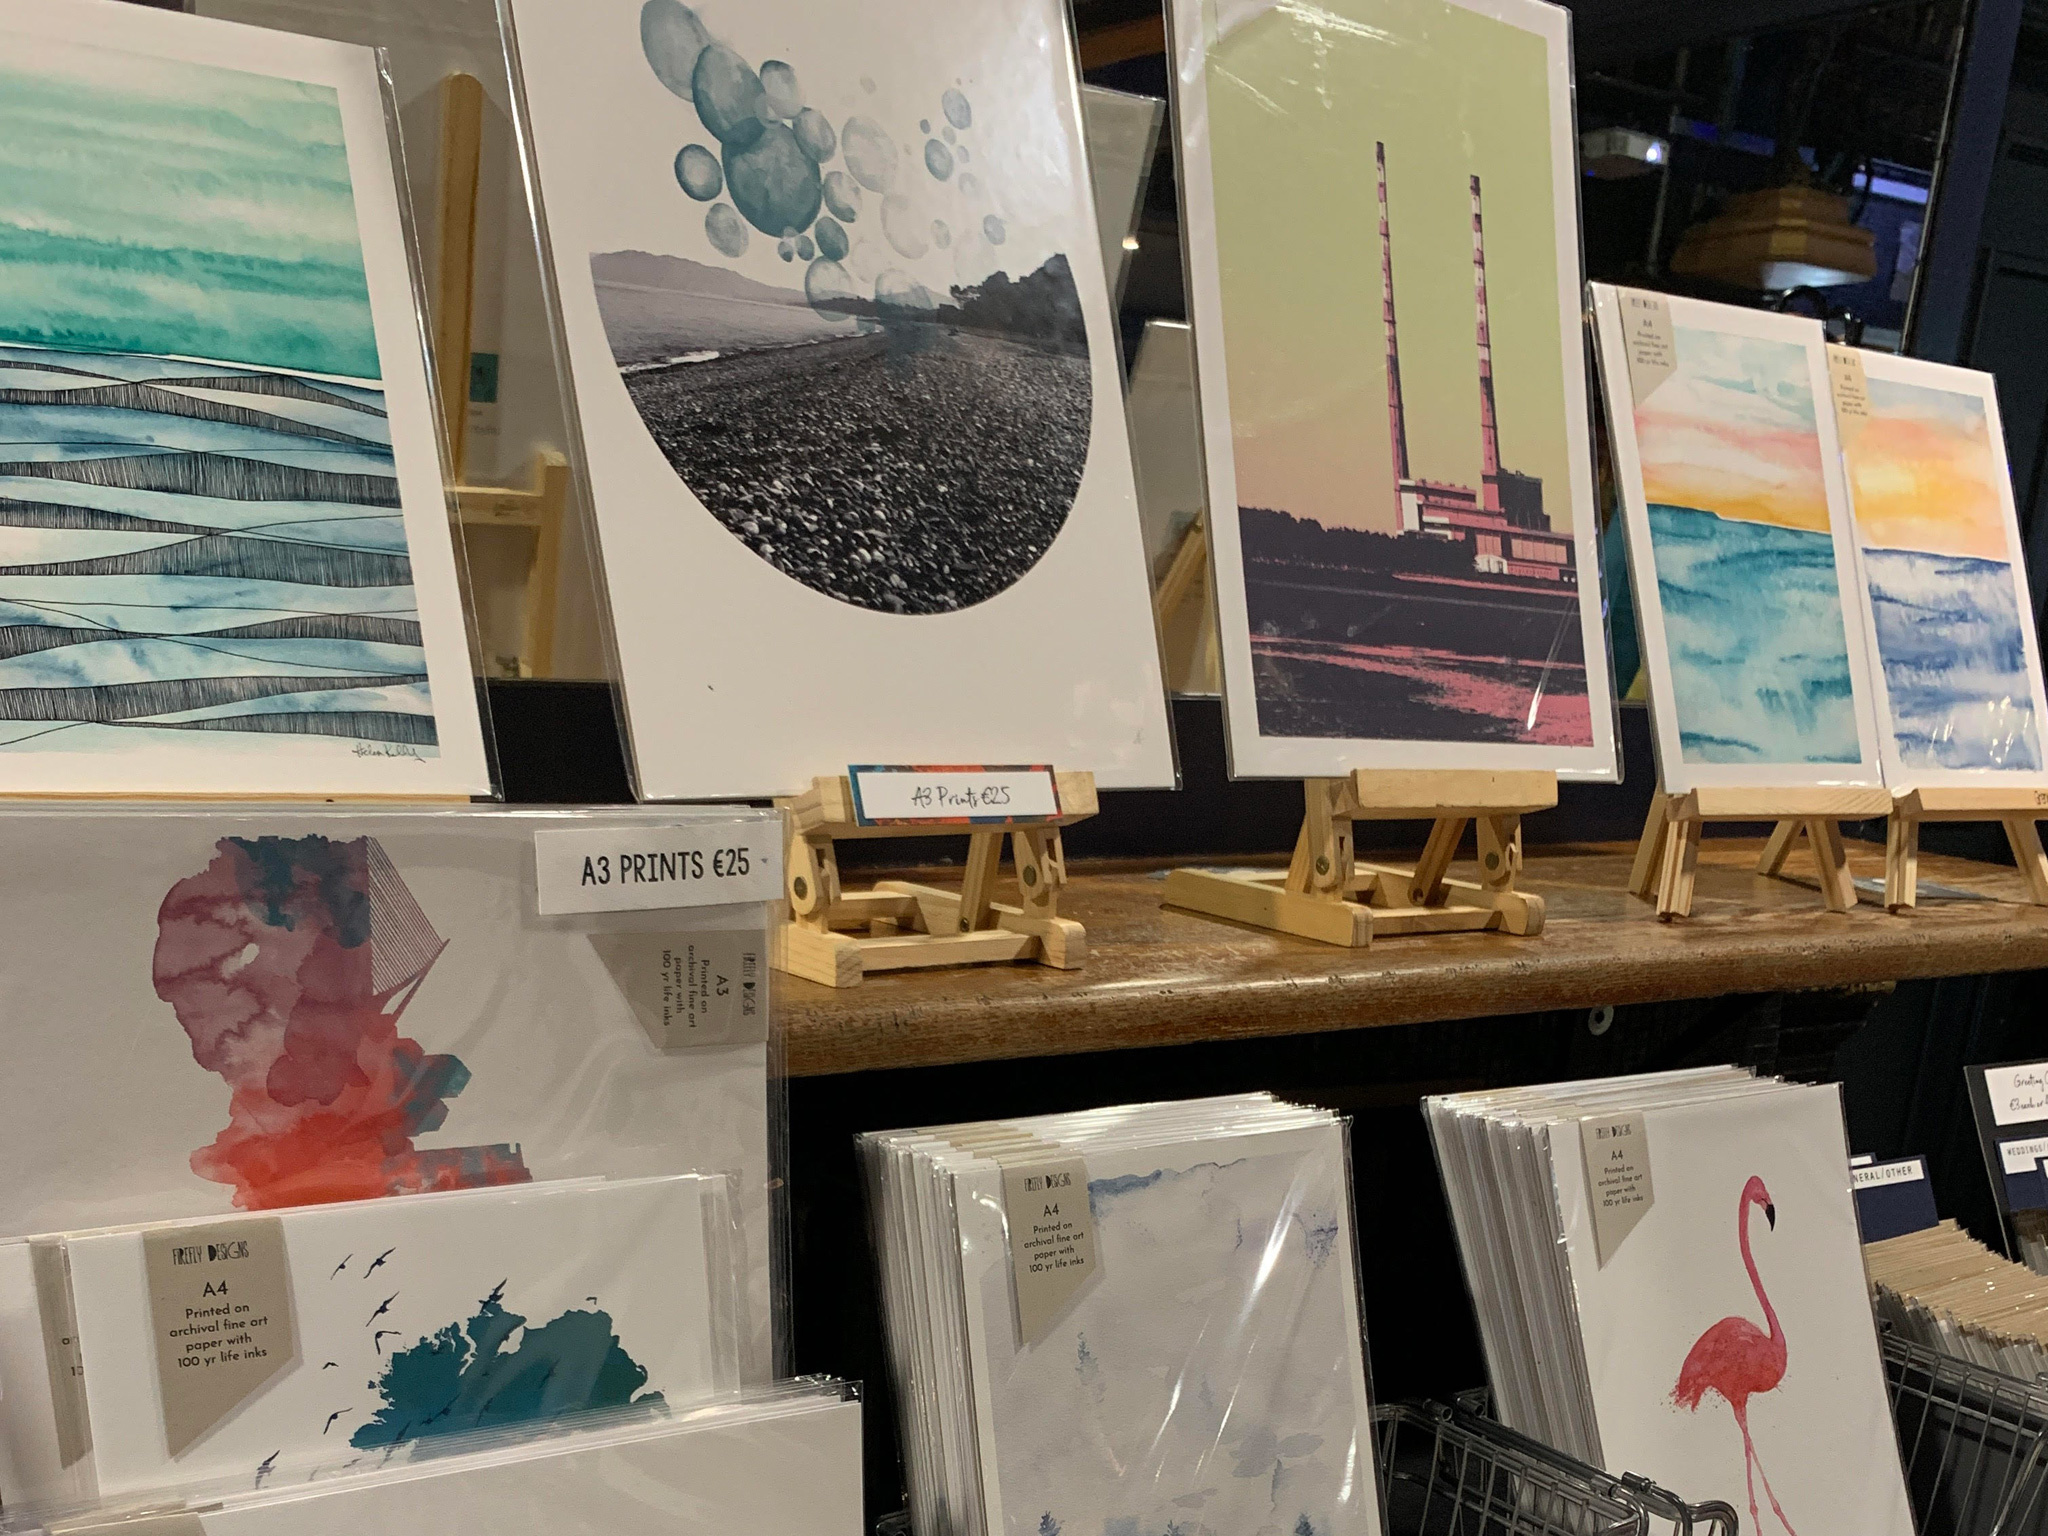 Cards and prints on sale at a Fabulous Market in Dublin